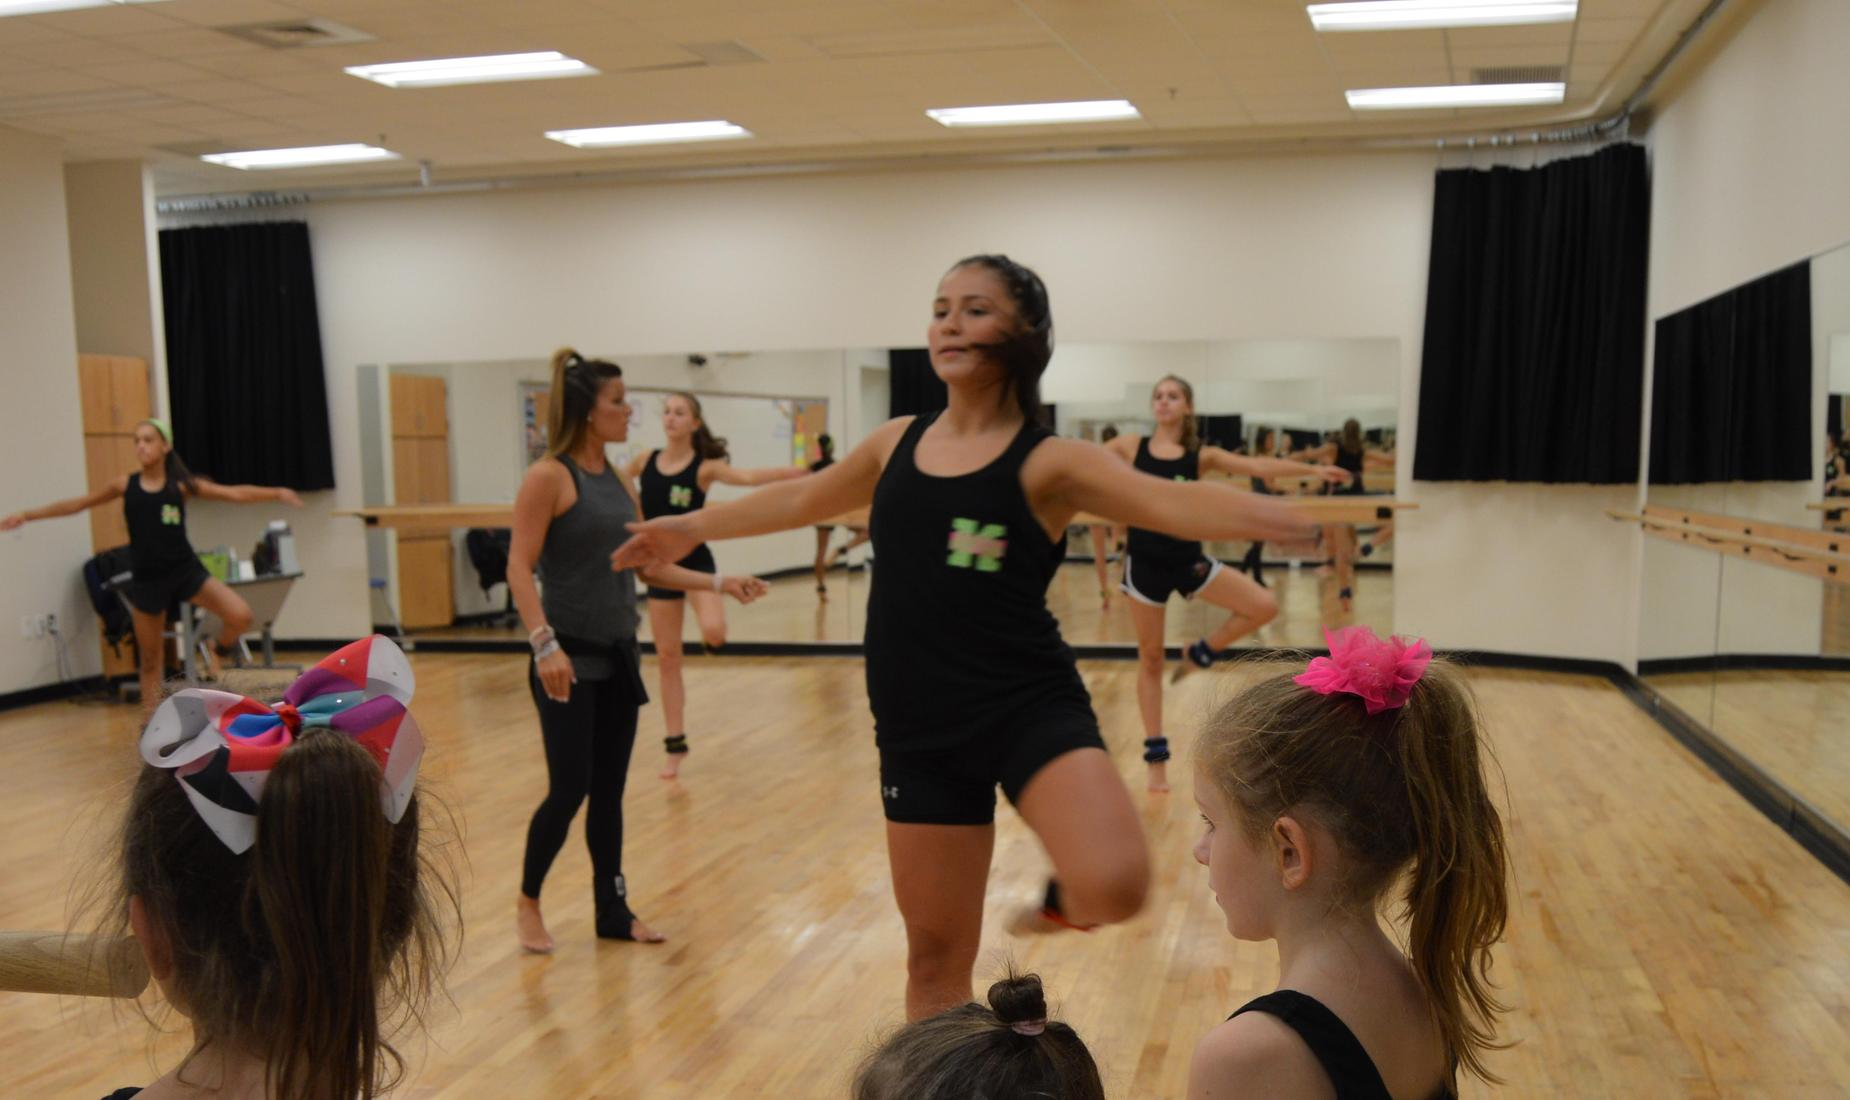 4 dancers and their instructor in the Bensalem High School Dance Studio doing twirls as 3 young students watch